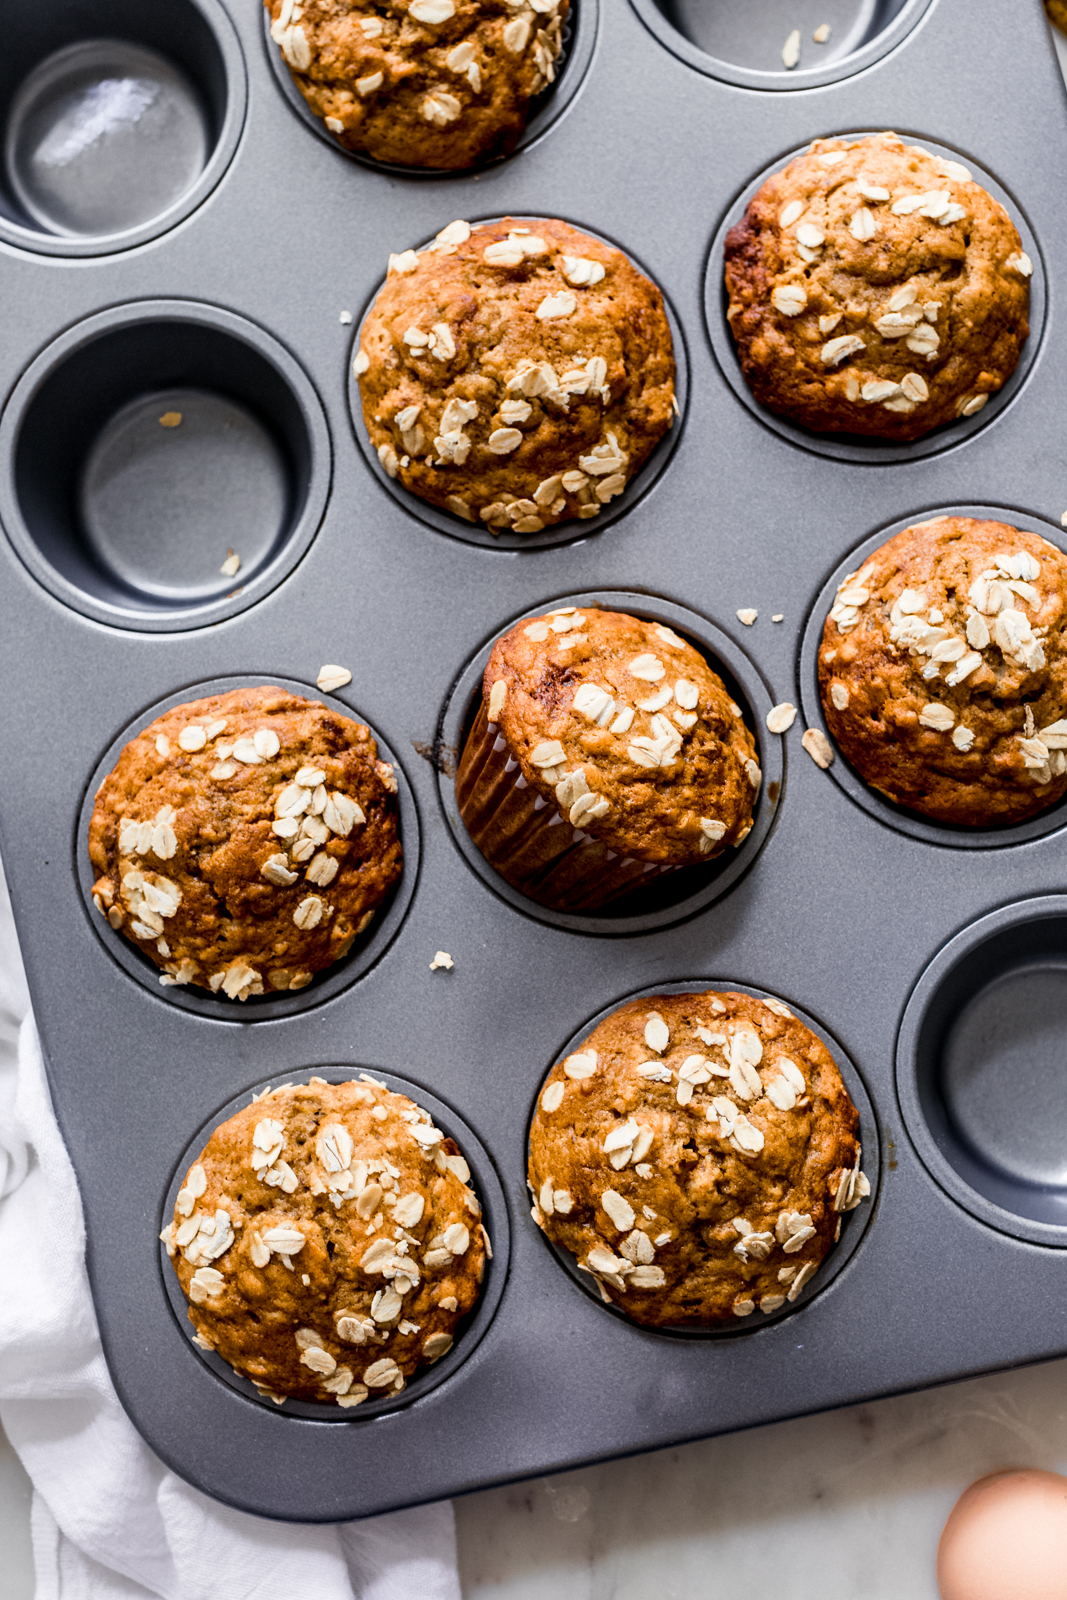 muffin pan with prepared muffins topped with rolled oats